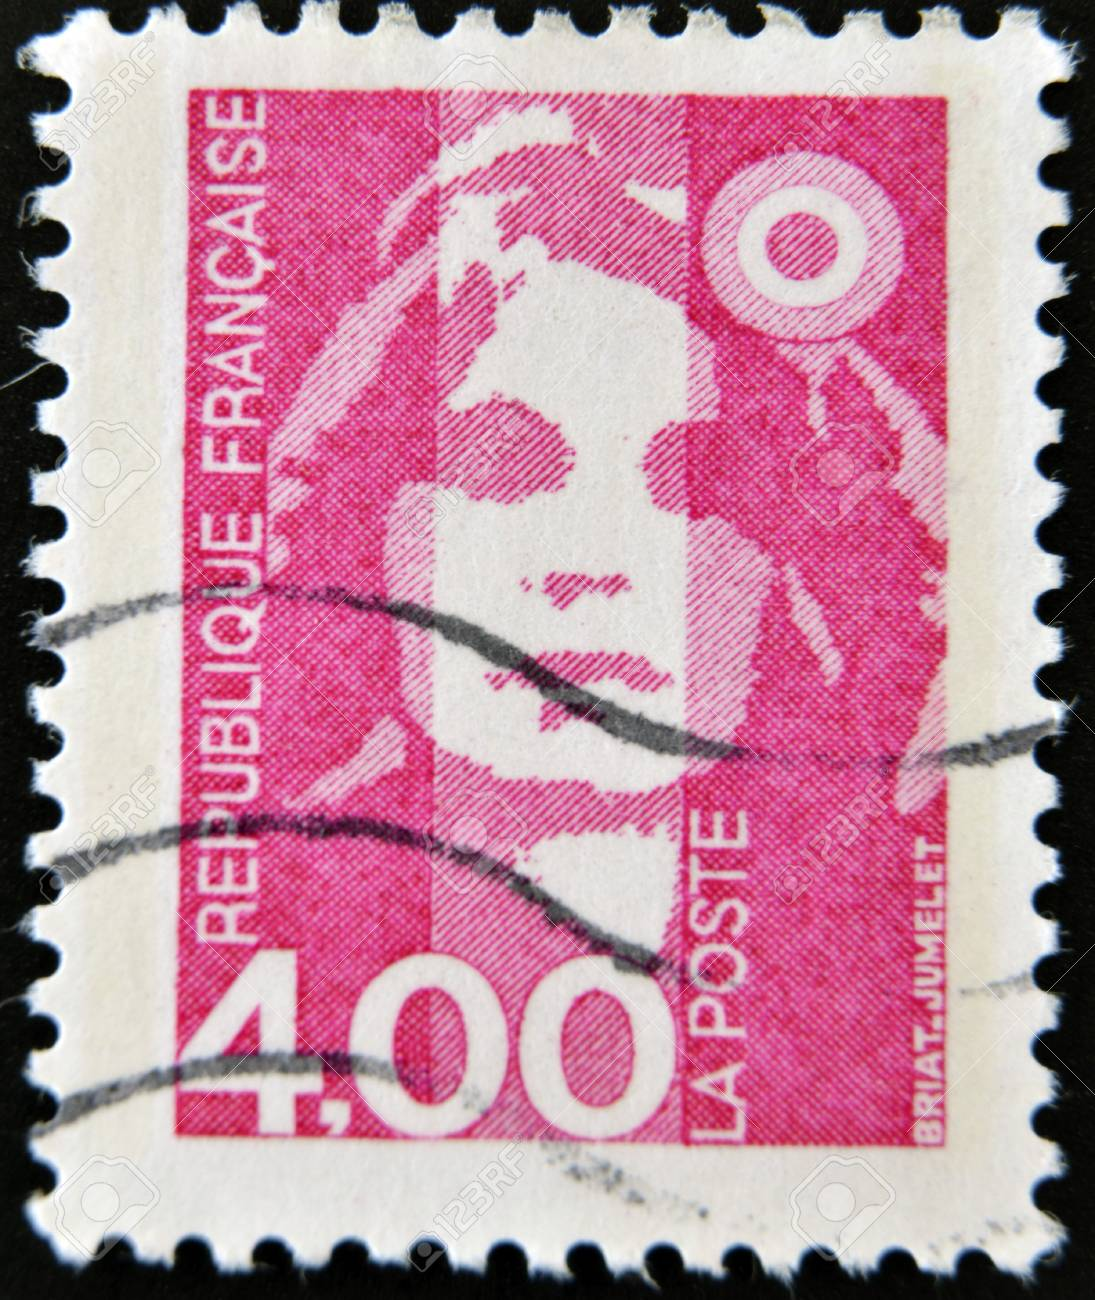 FRANCE - CIRCA 1989  A stamp printed in France, depicts Marianne is a national emblem of France, circa 1989  Stock Photo - 12465054